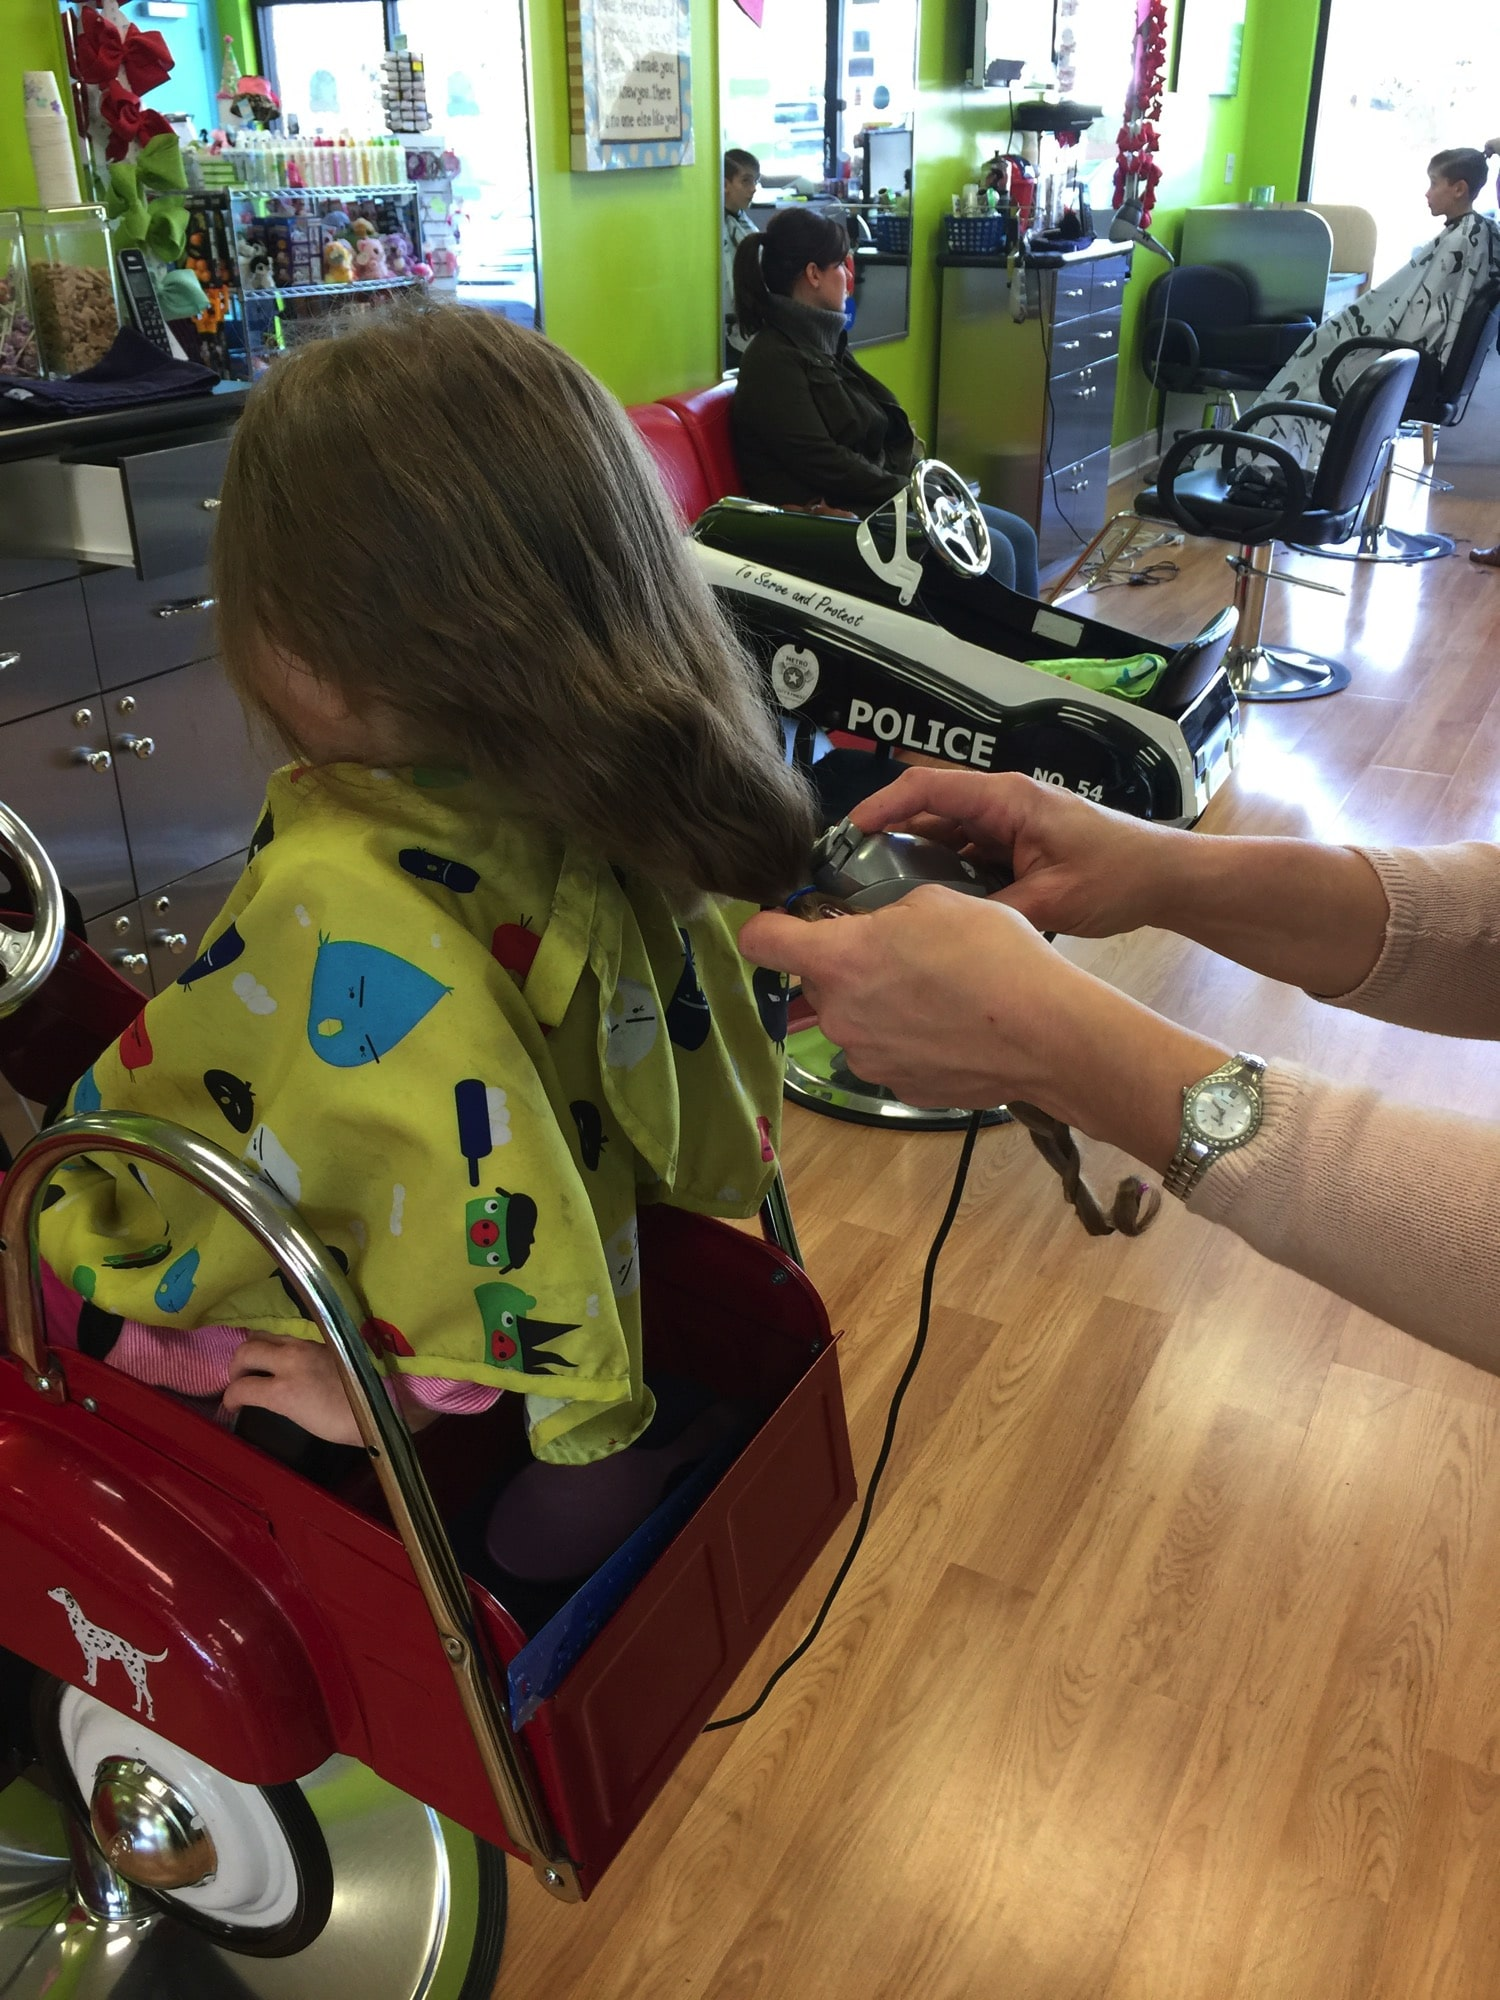 The haircut donation